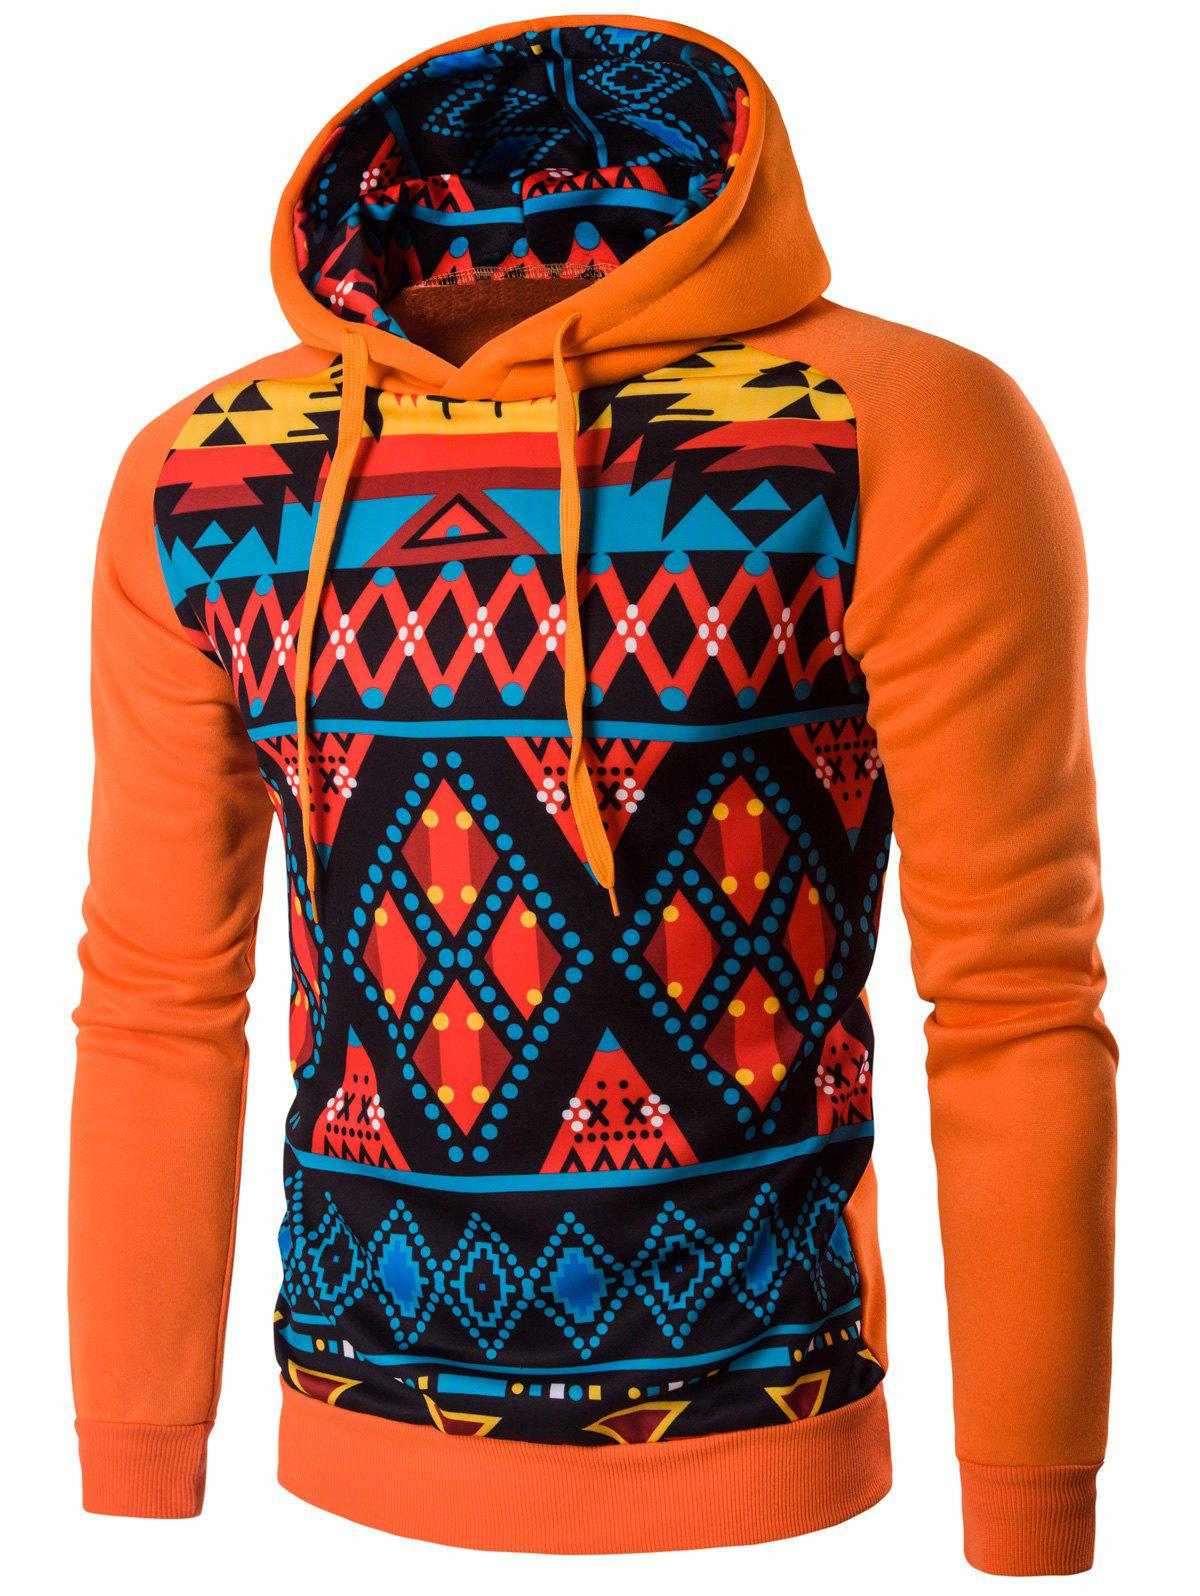 Geometric Sweatshirt à capuche Cartoon - Douce Orange L